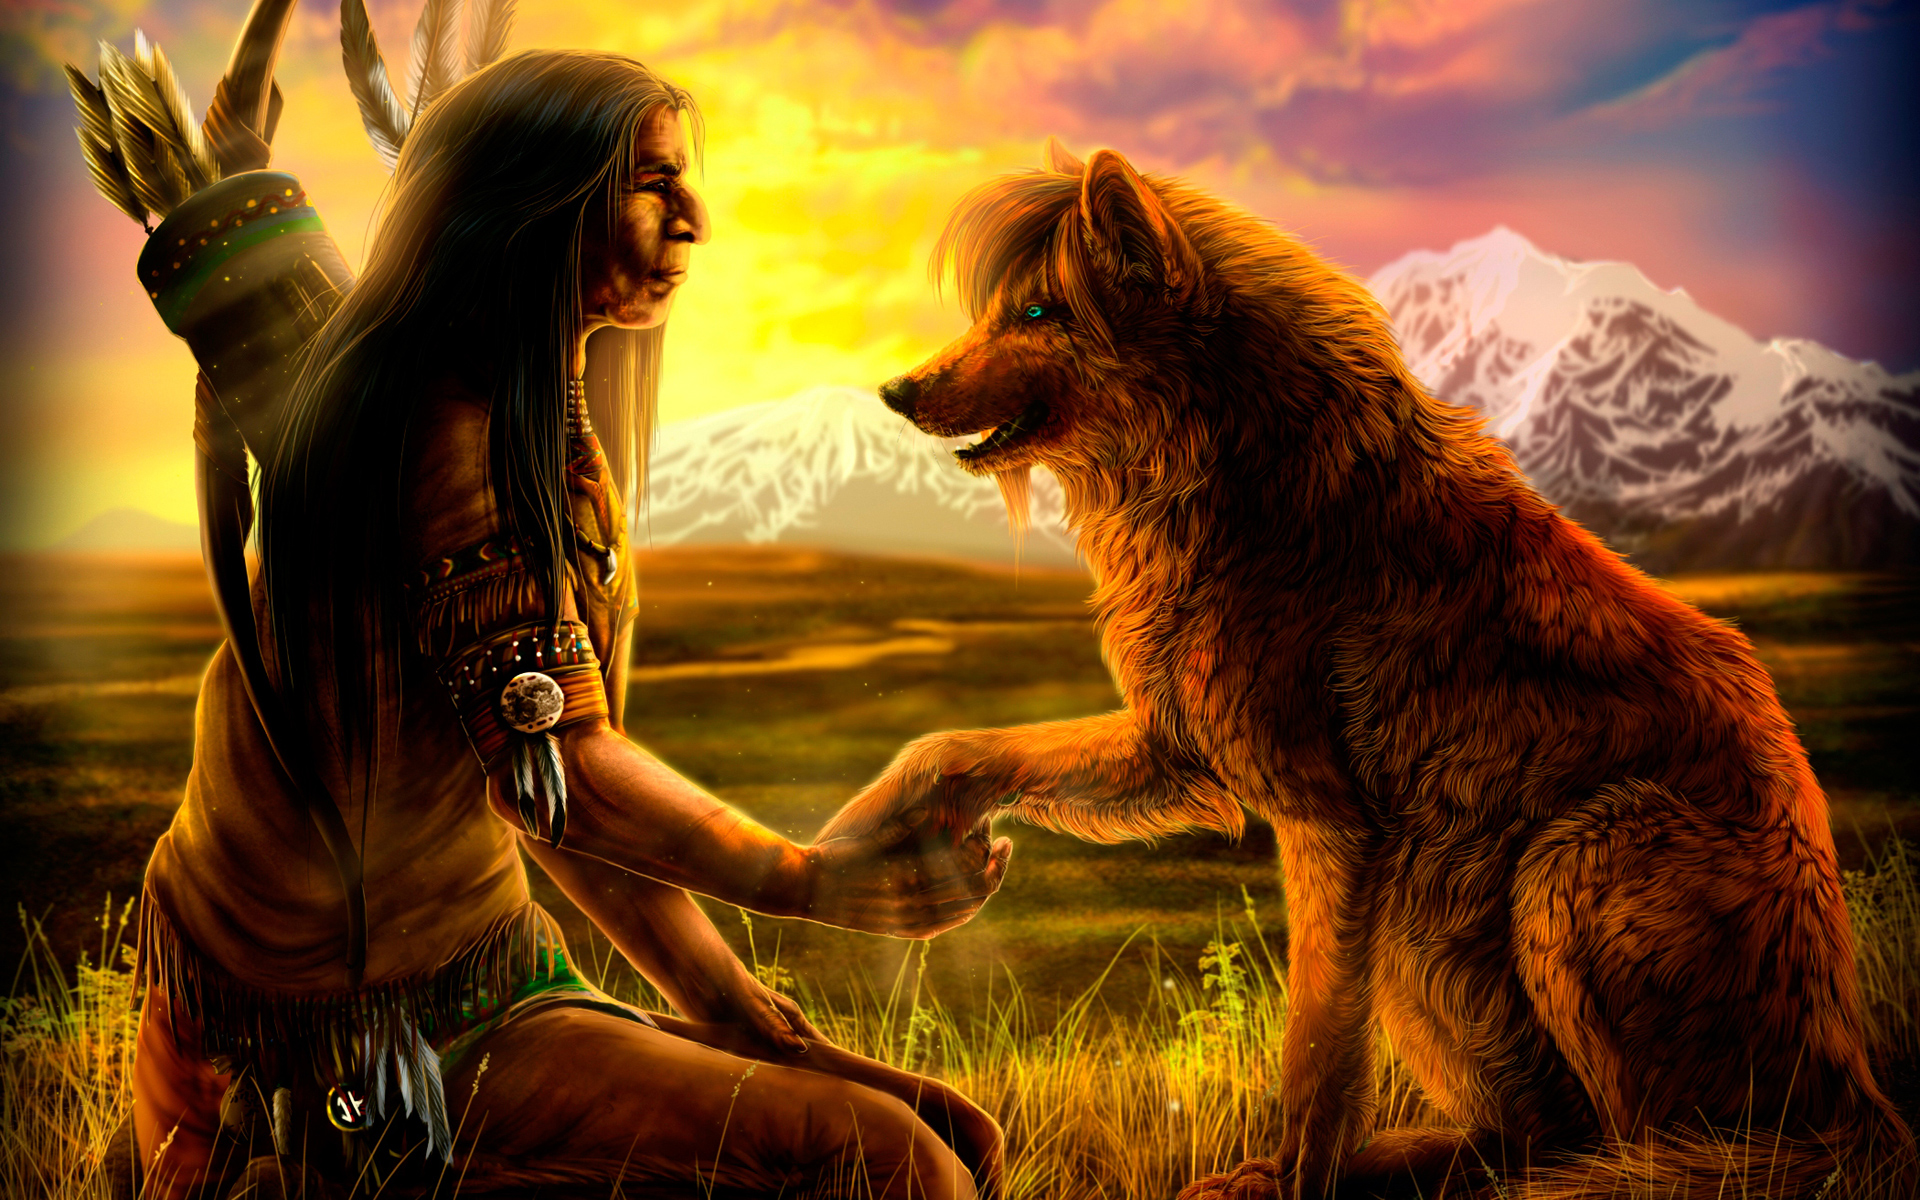 Hd wallpaper indian - Indians Images Native American Wallpaper Photos 34175373